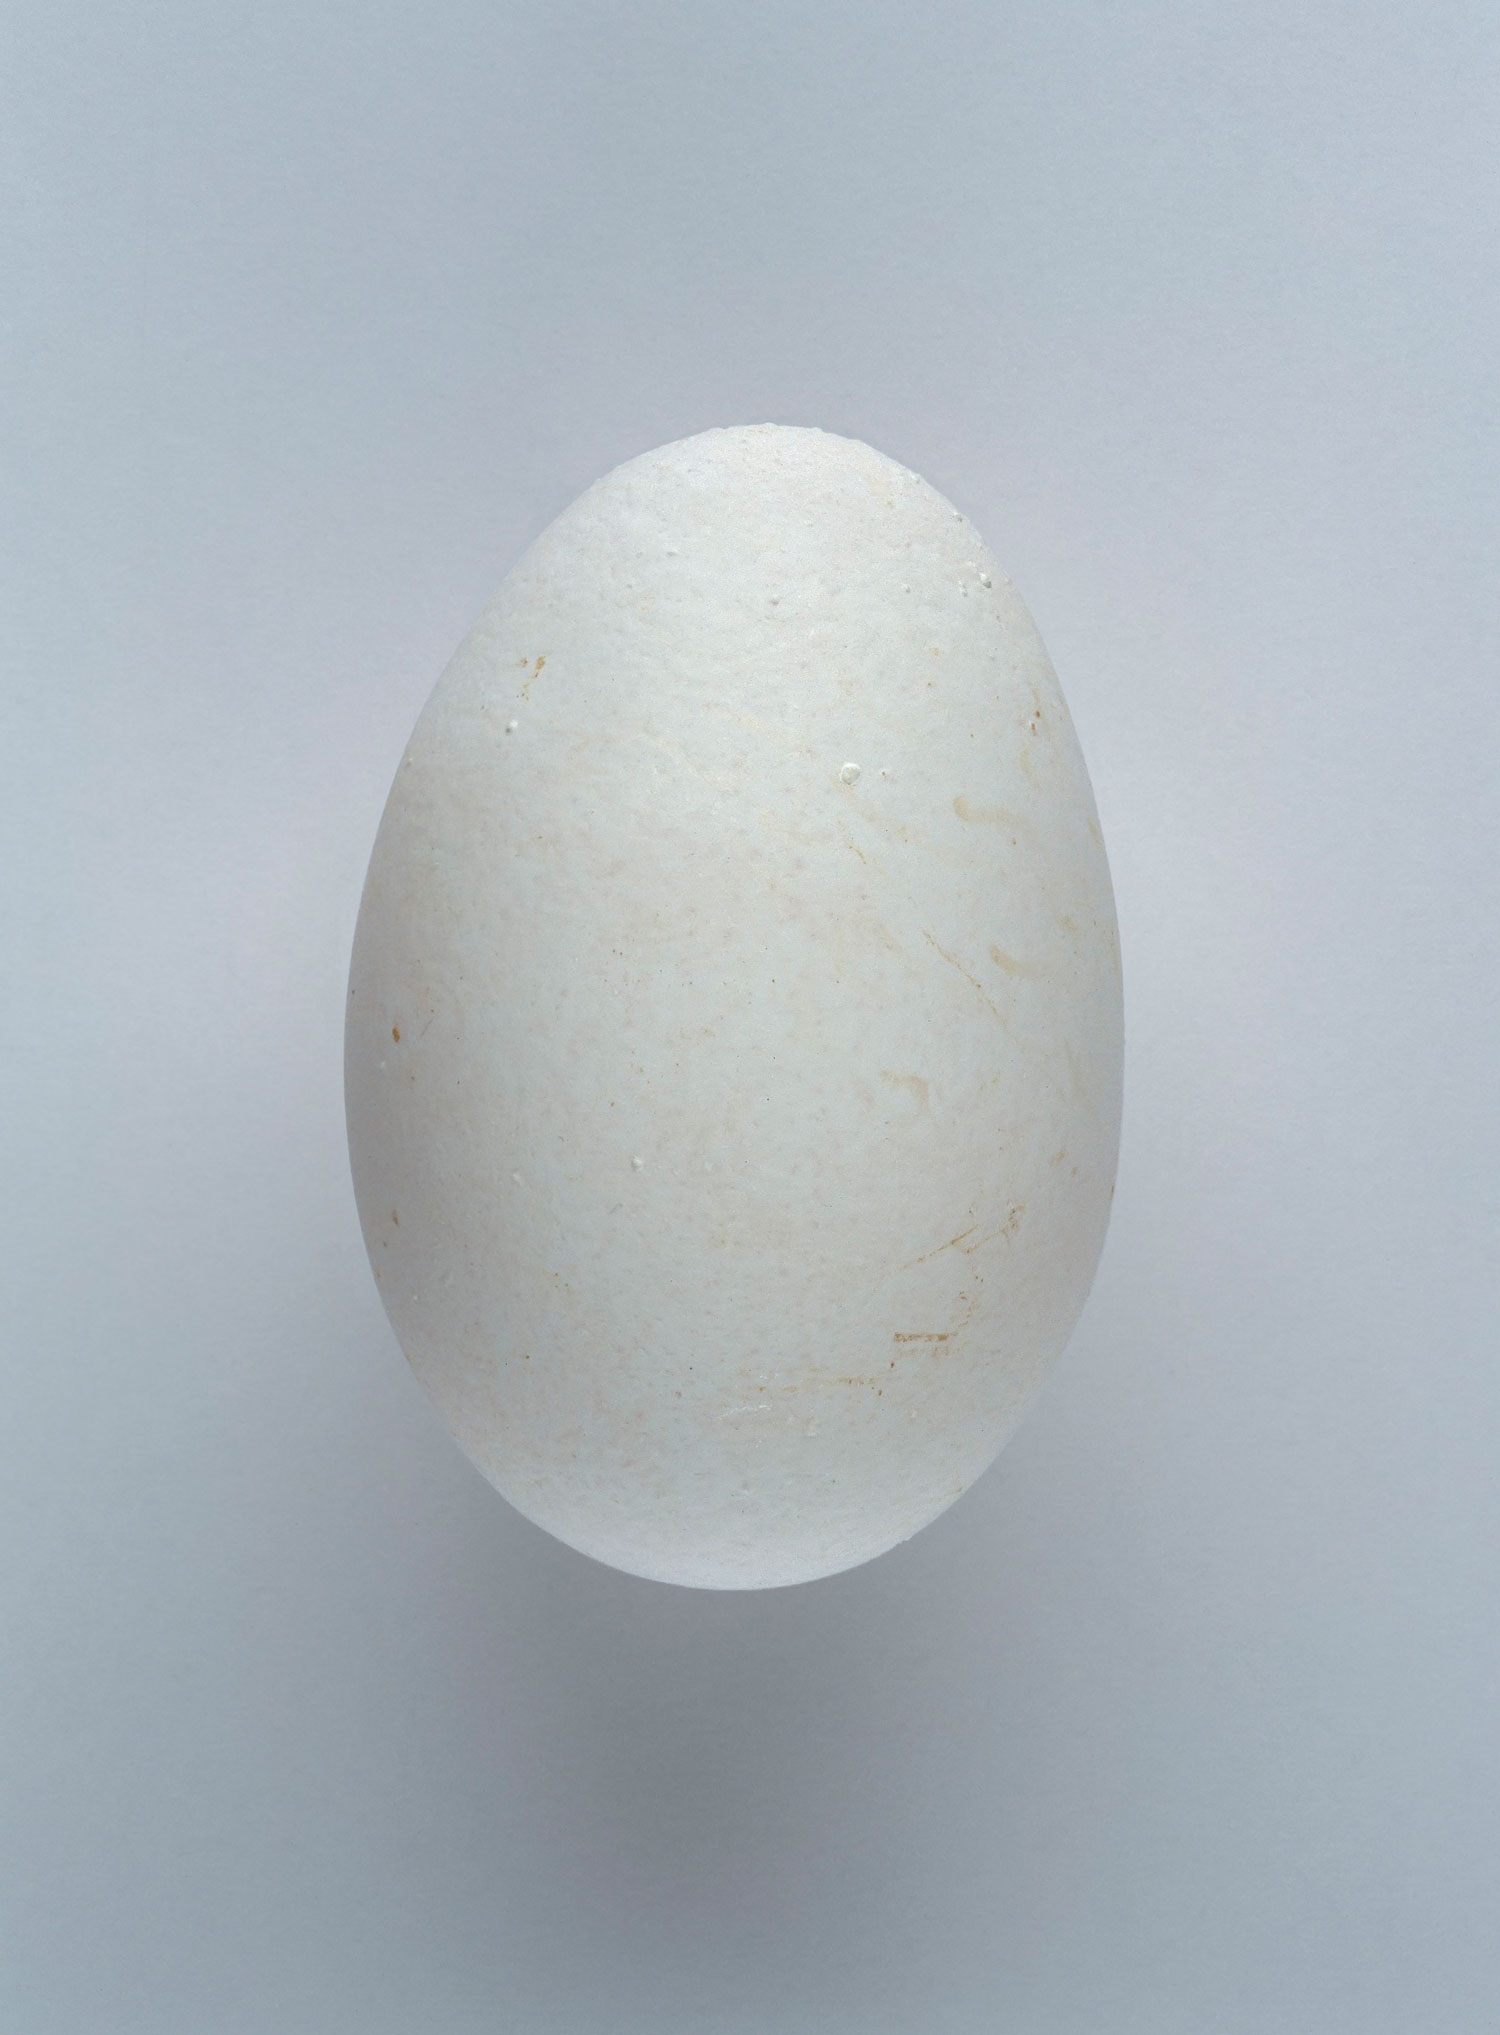 Fleischmann-Dirk_One-Hundred-And-Sixty-Two-Out-Of-Two-Billion-Eggs_2004_1500x2035